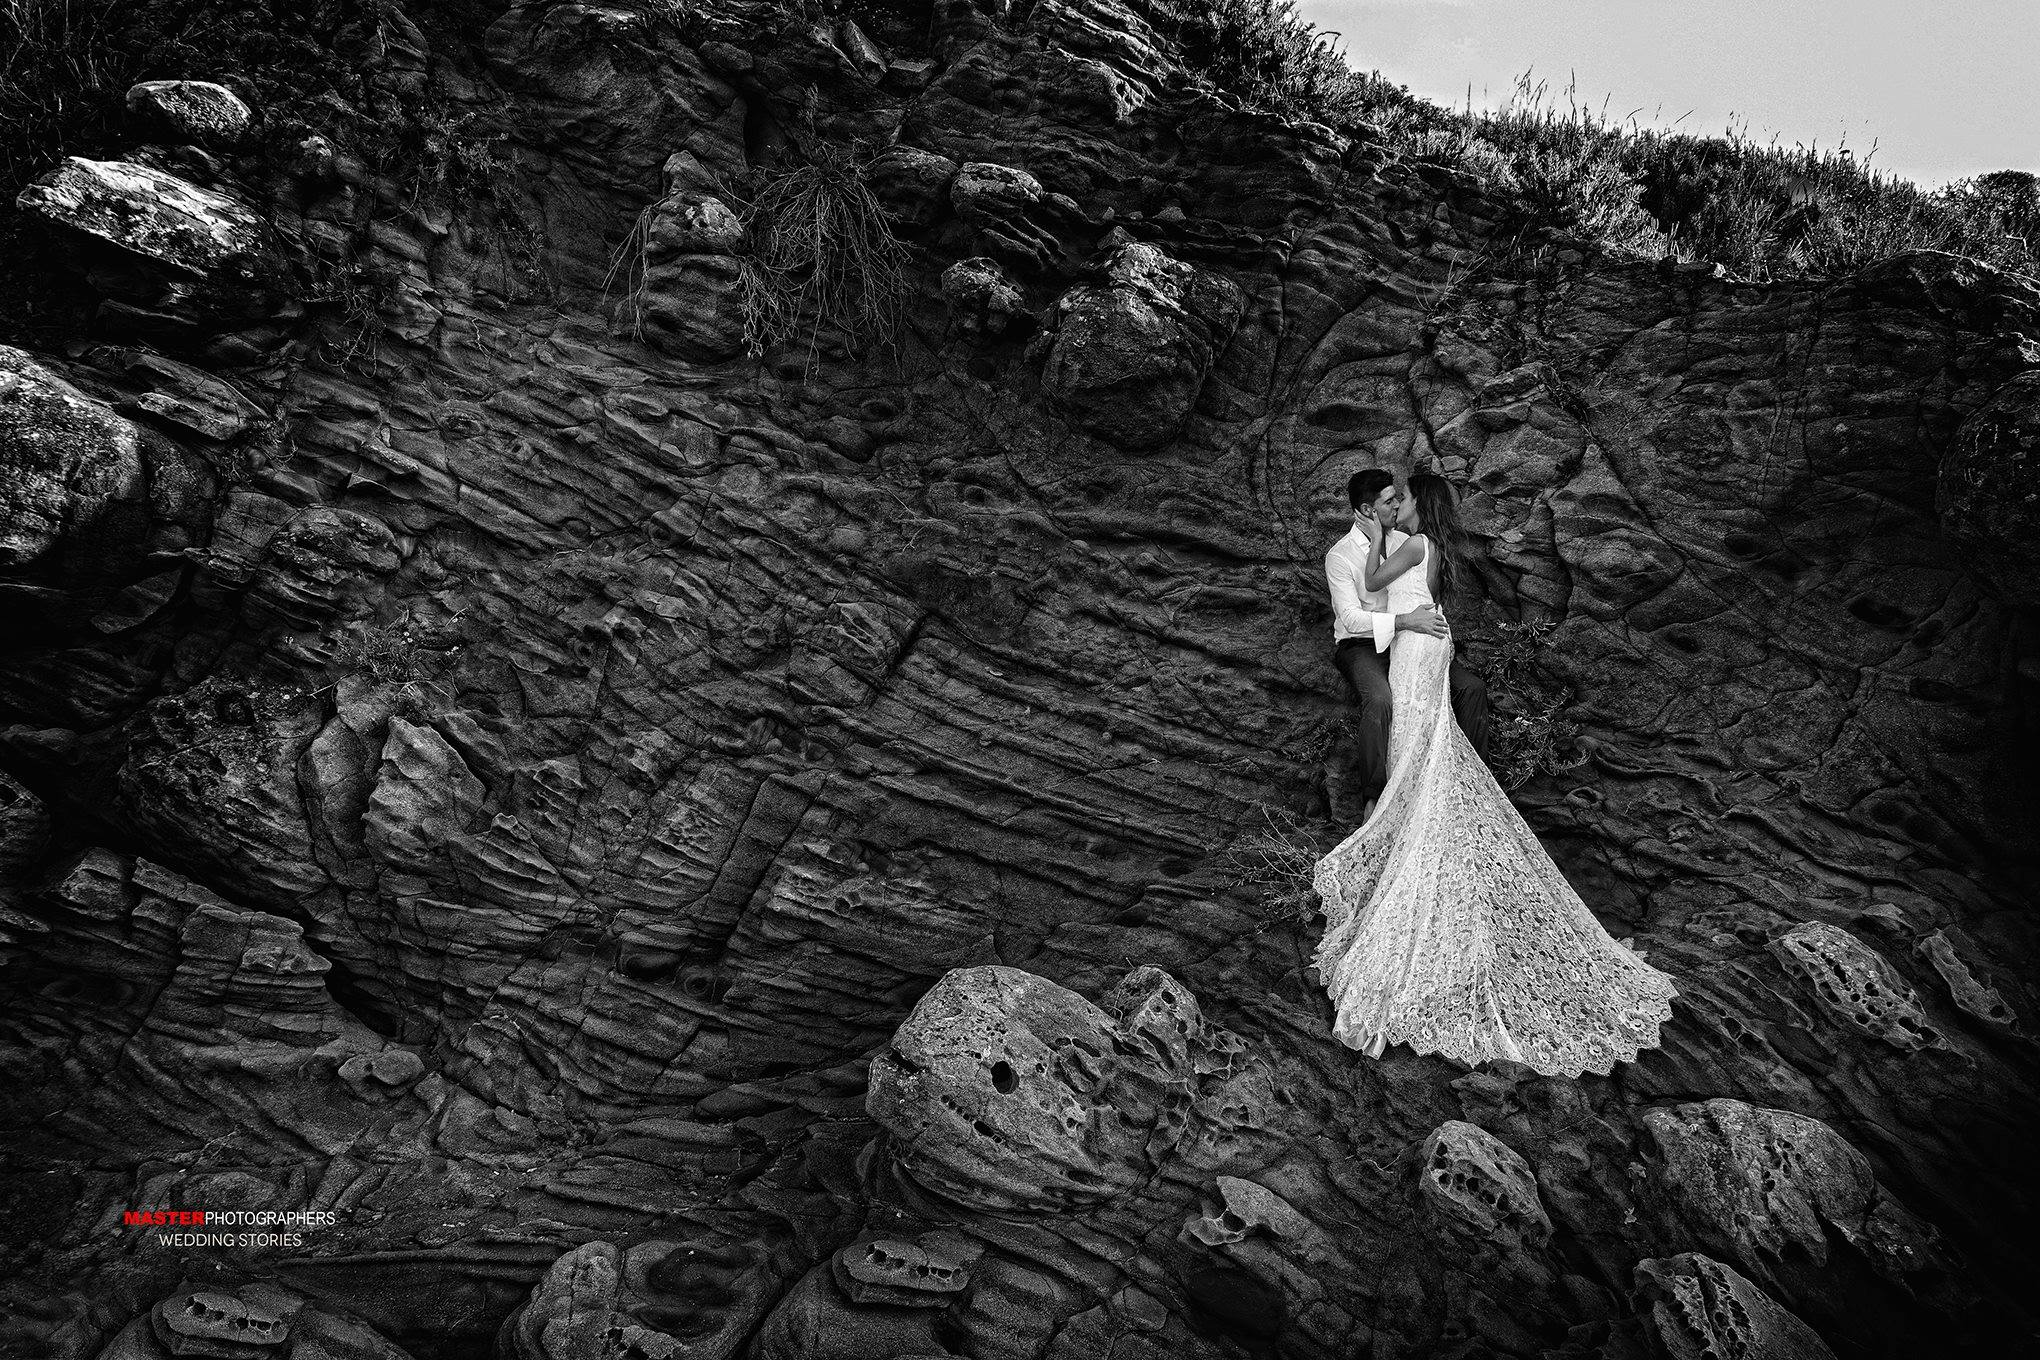 A kiss on the rocks - Sicily Wedding Destination